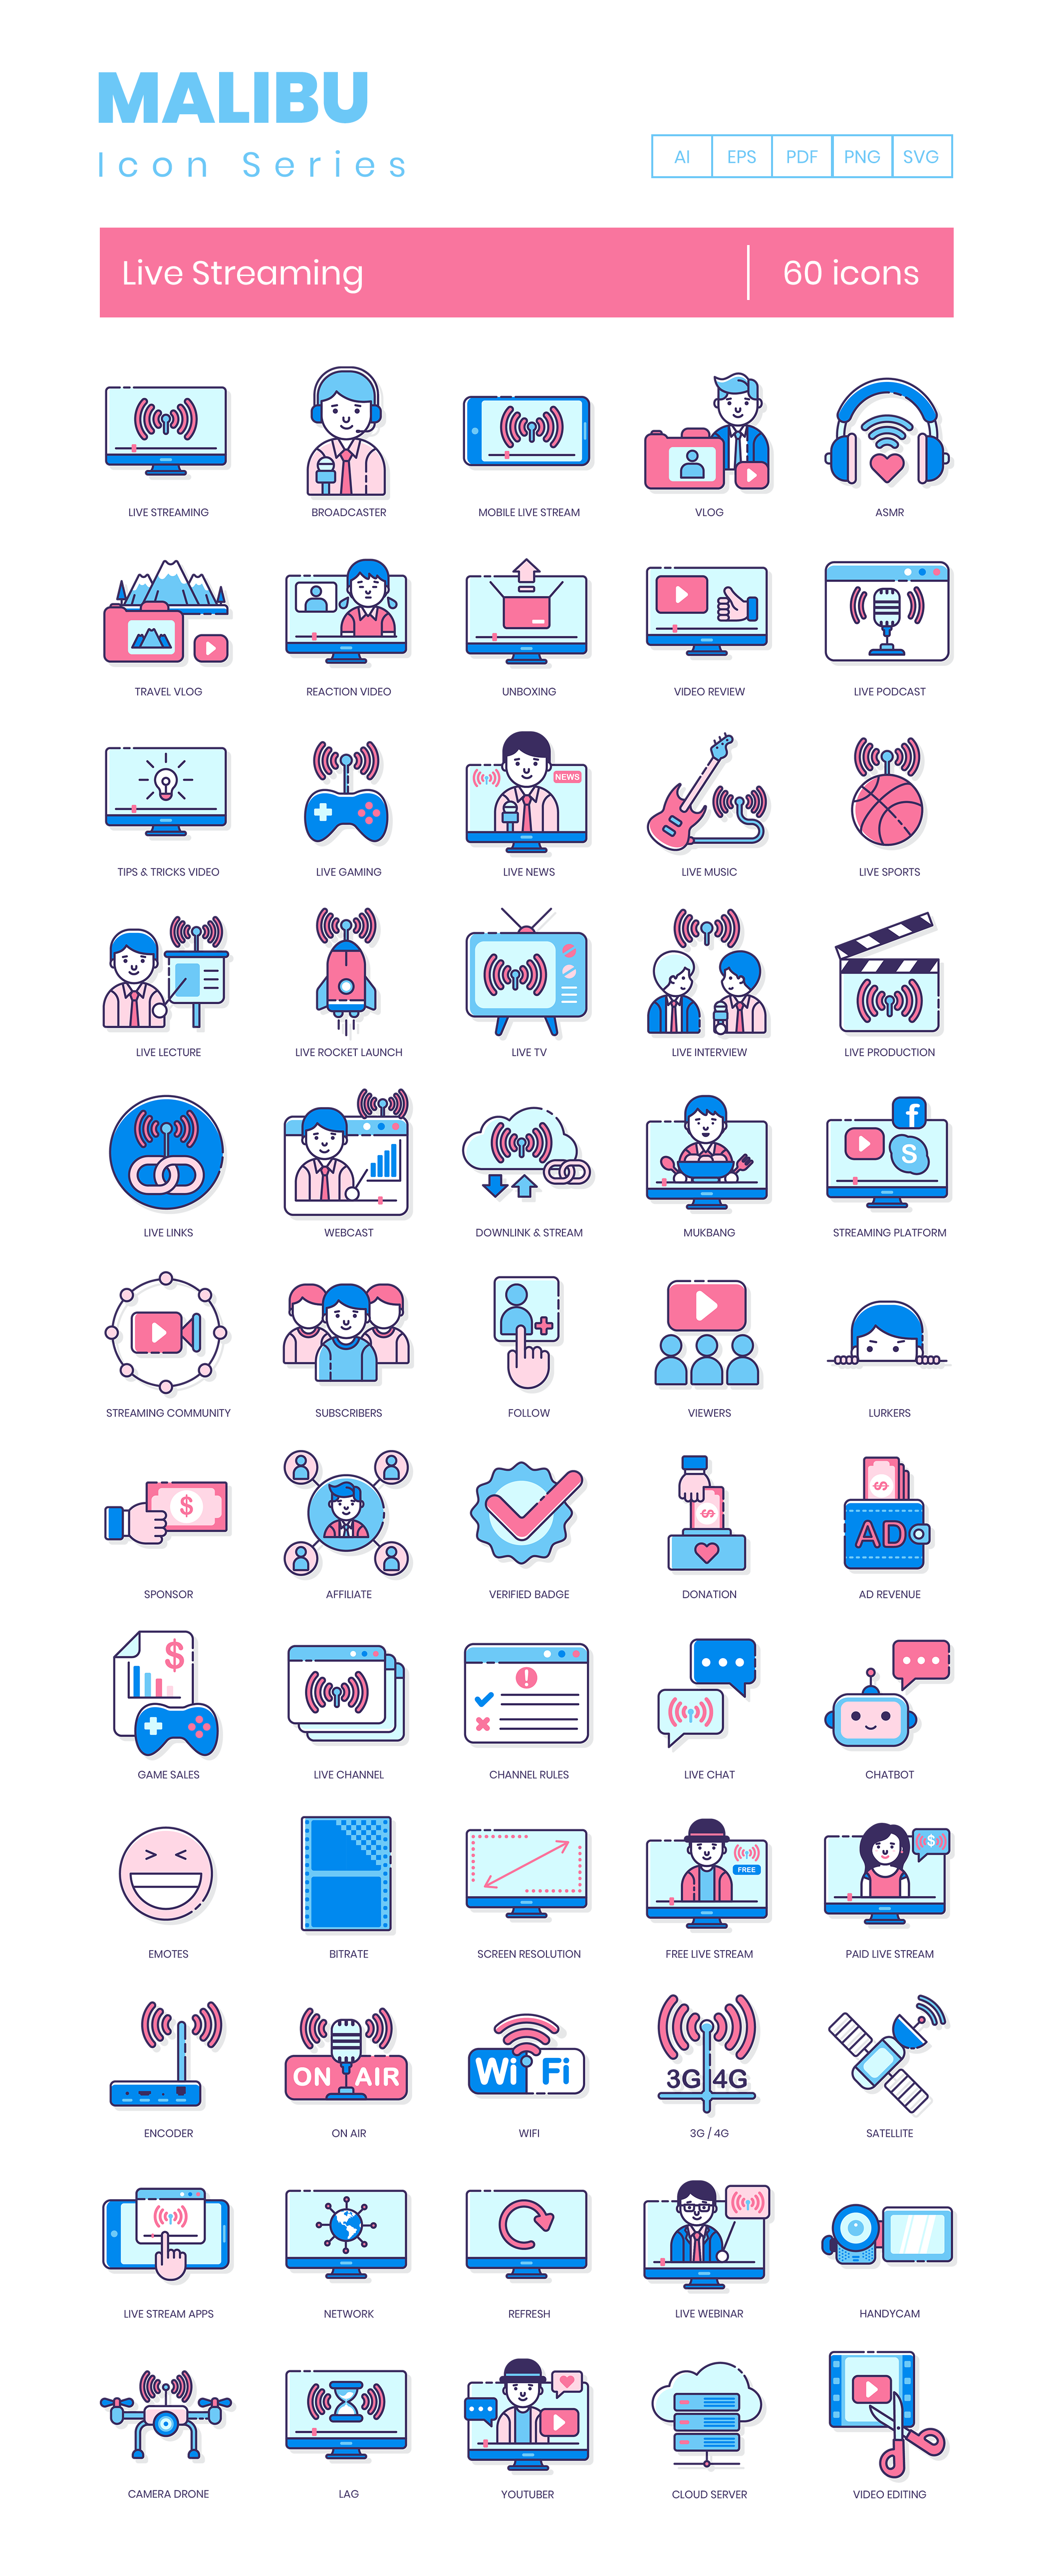 Live Streaming Icons